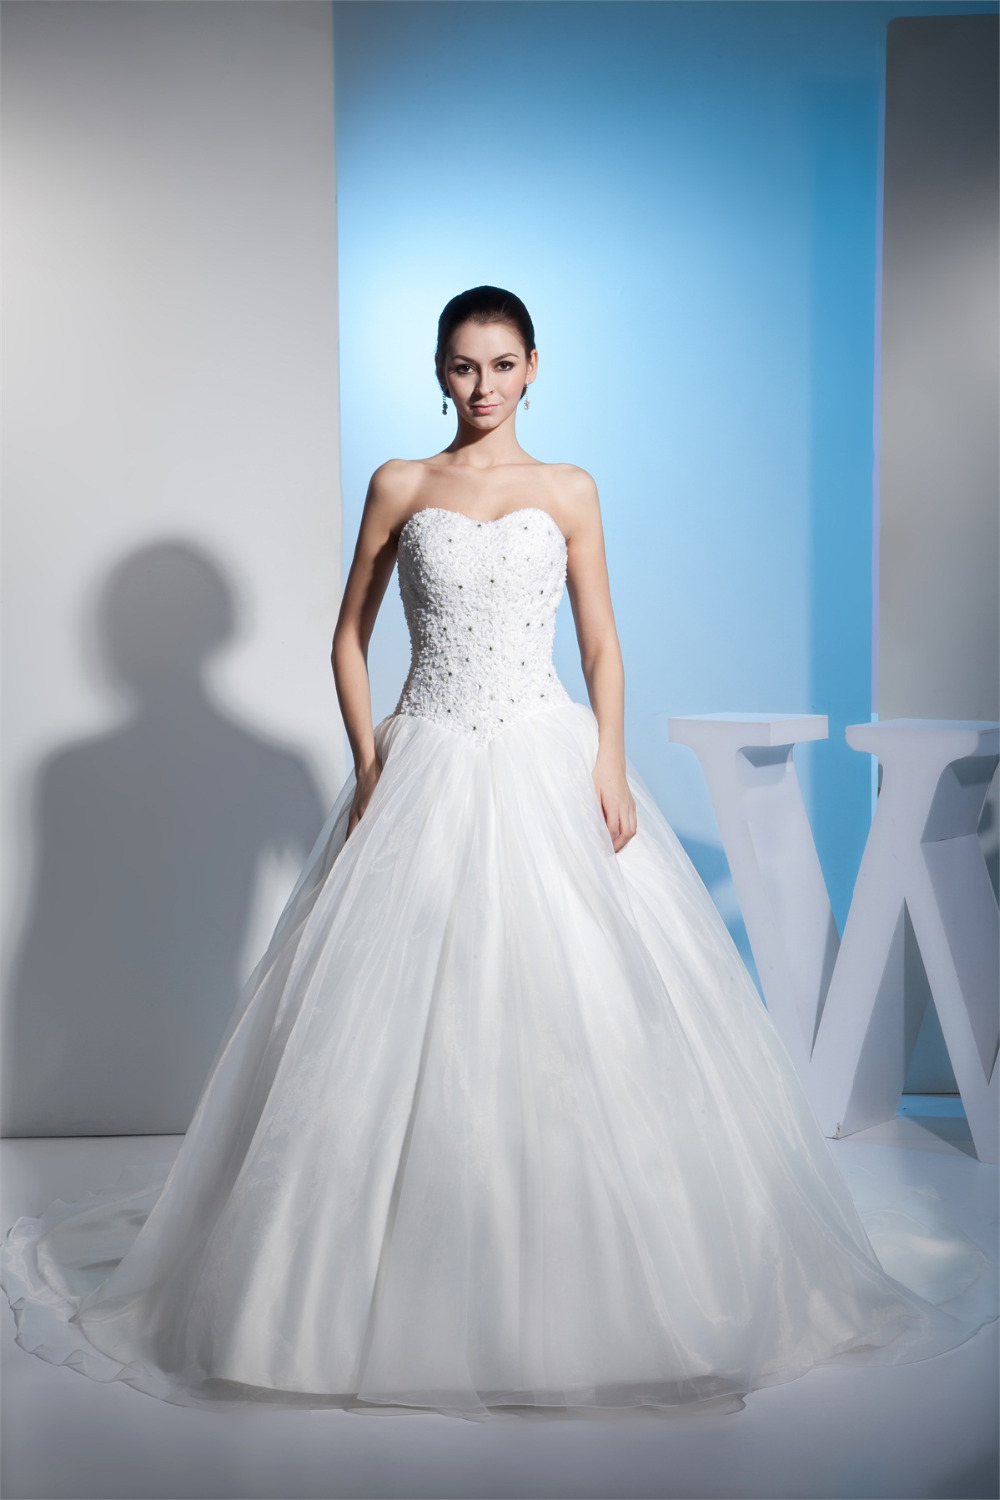 New Arrival Wedding Dress 2015 Sweetheart Lace Appliques Elegant Cheap Wedding Gowns Bridal